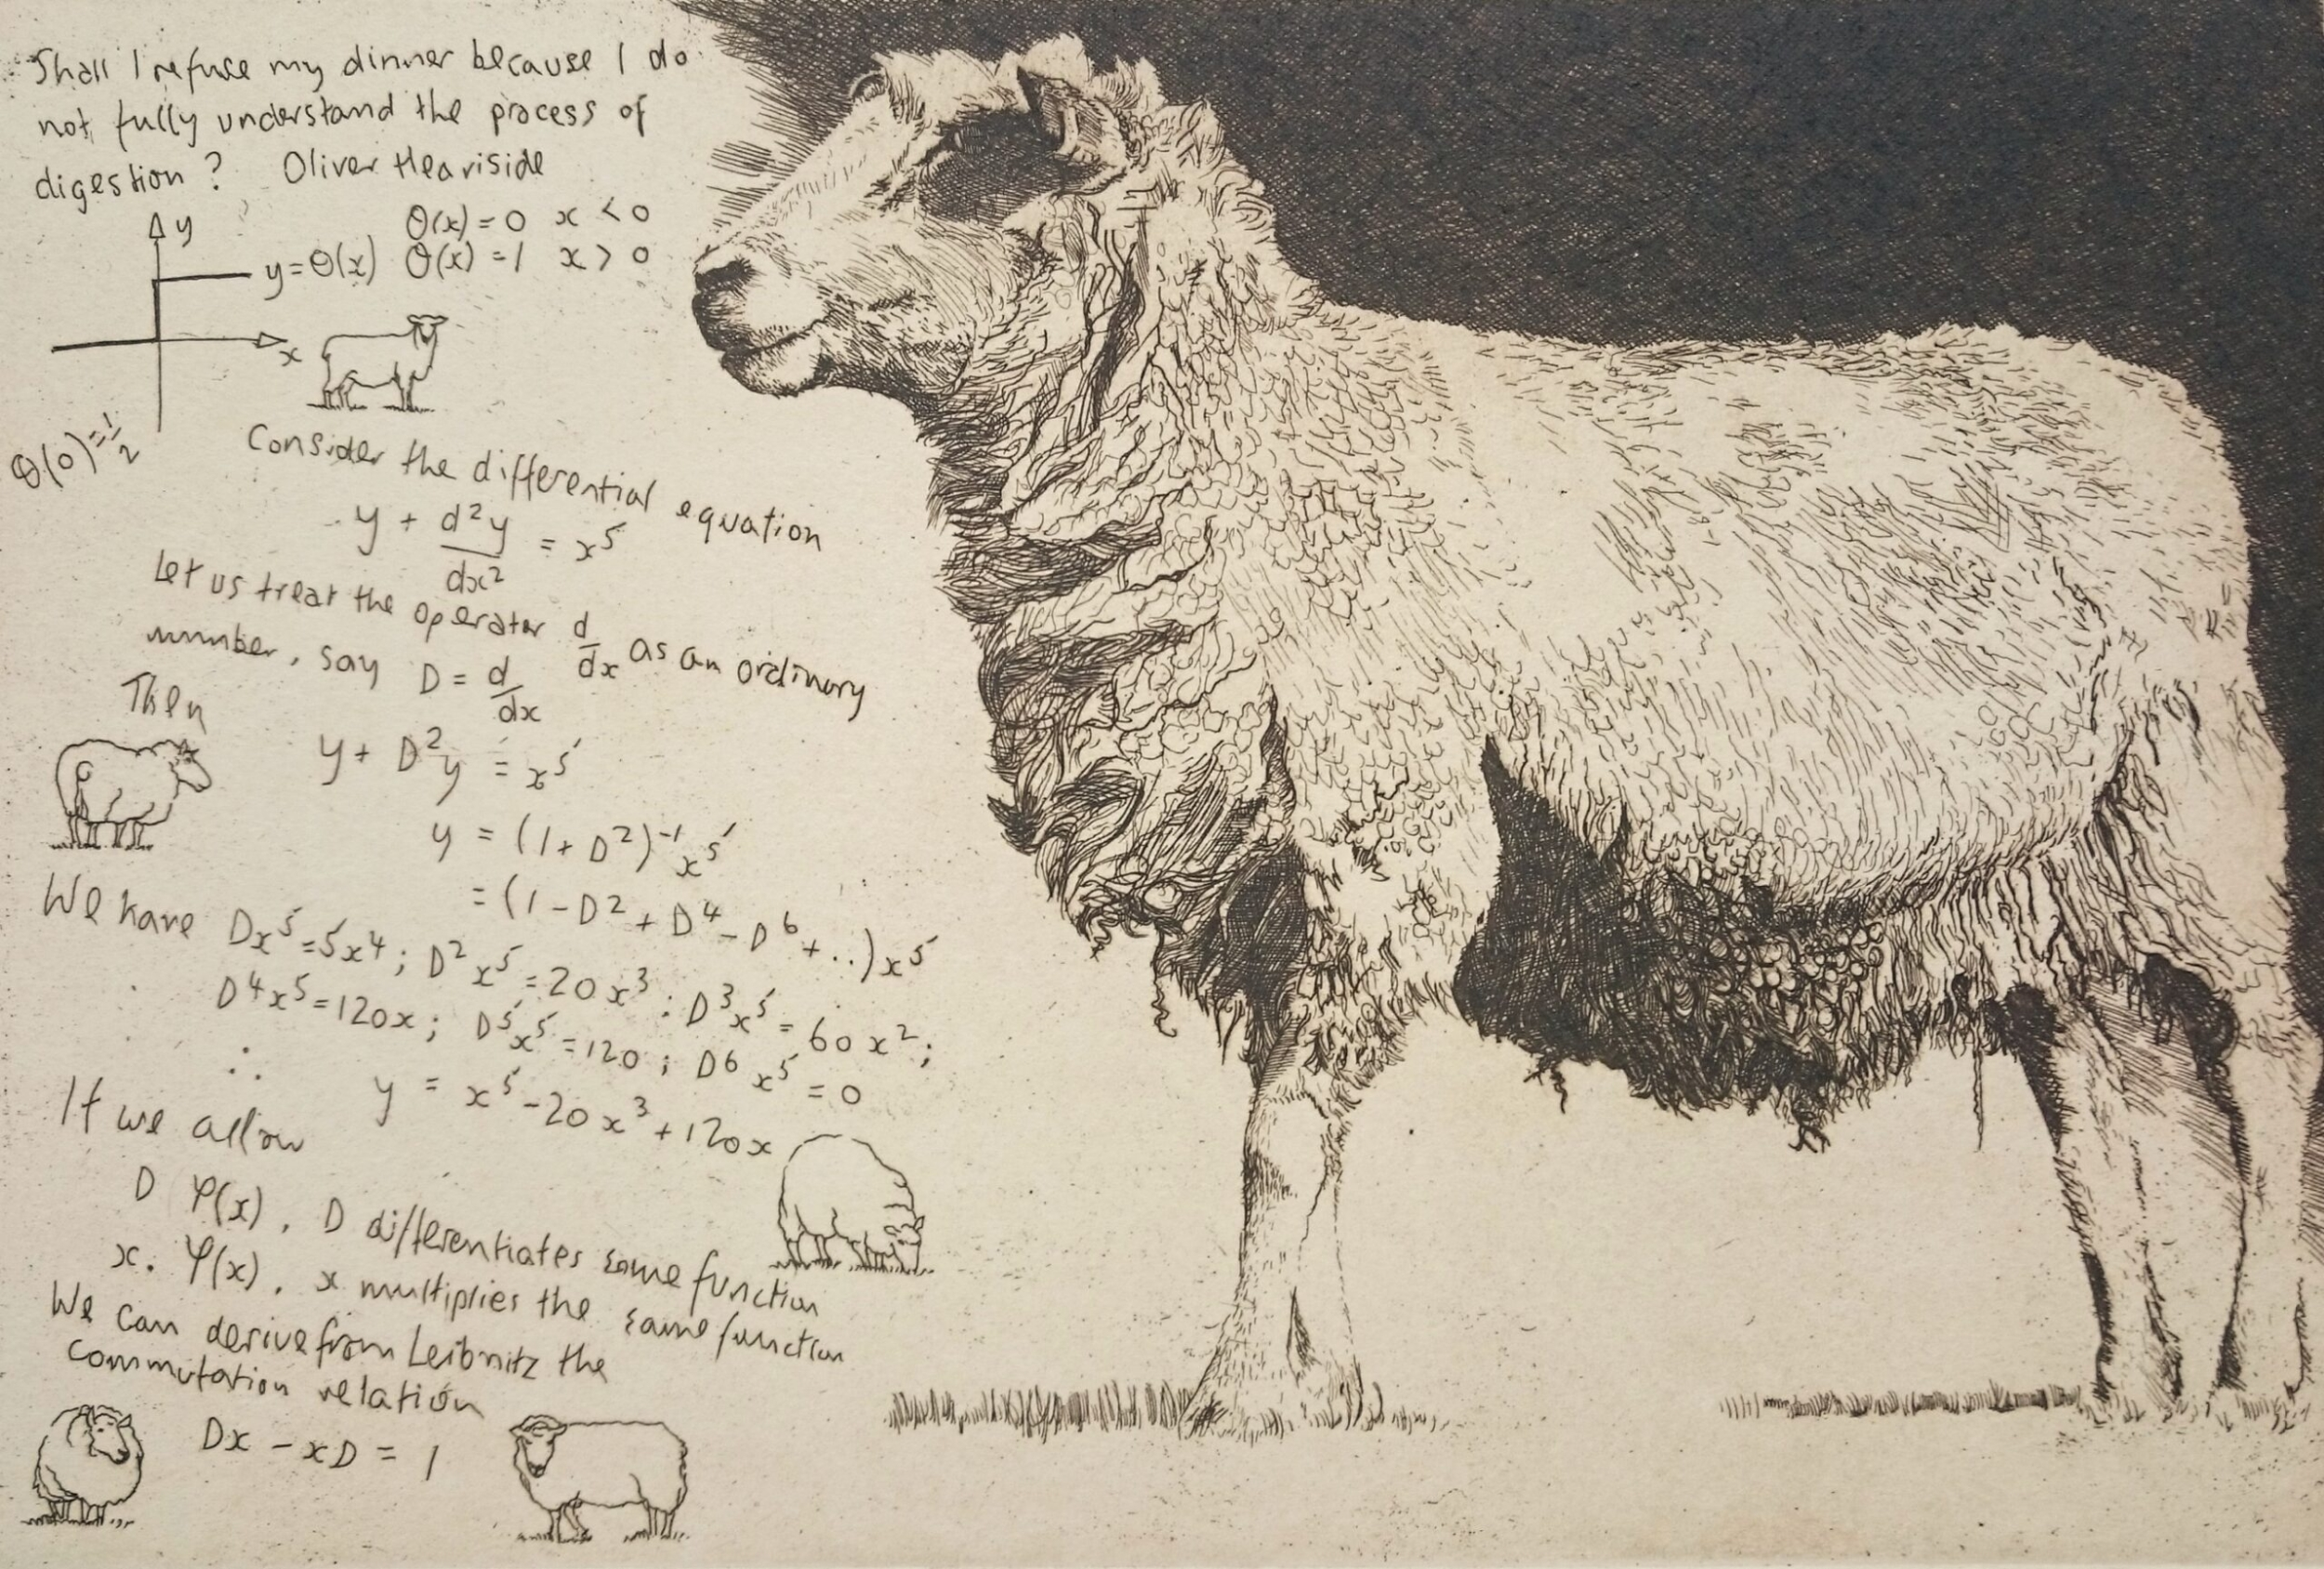 Etching of a sheep with notes on the works of Oliver Heaviside